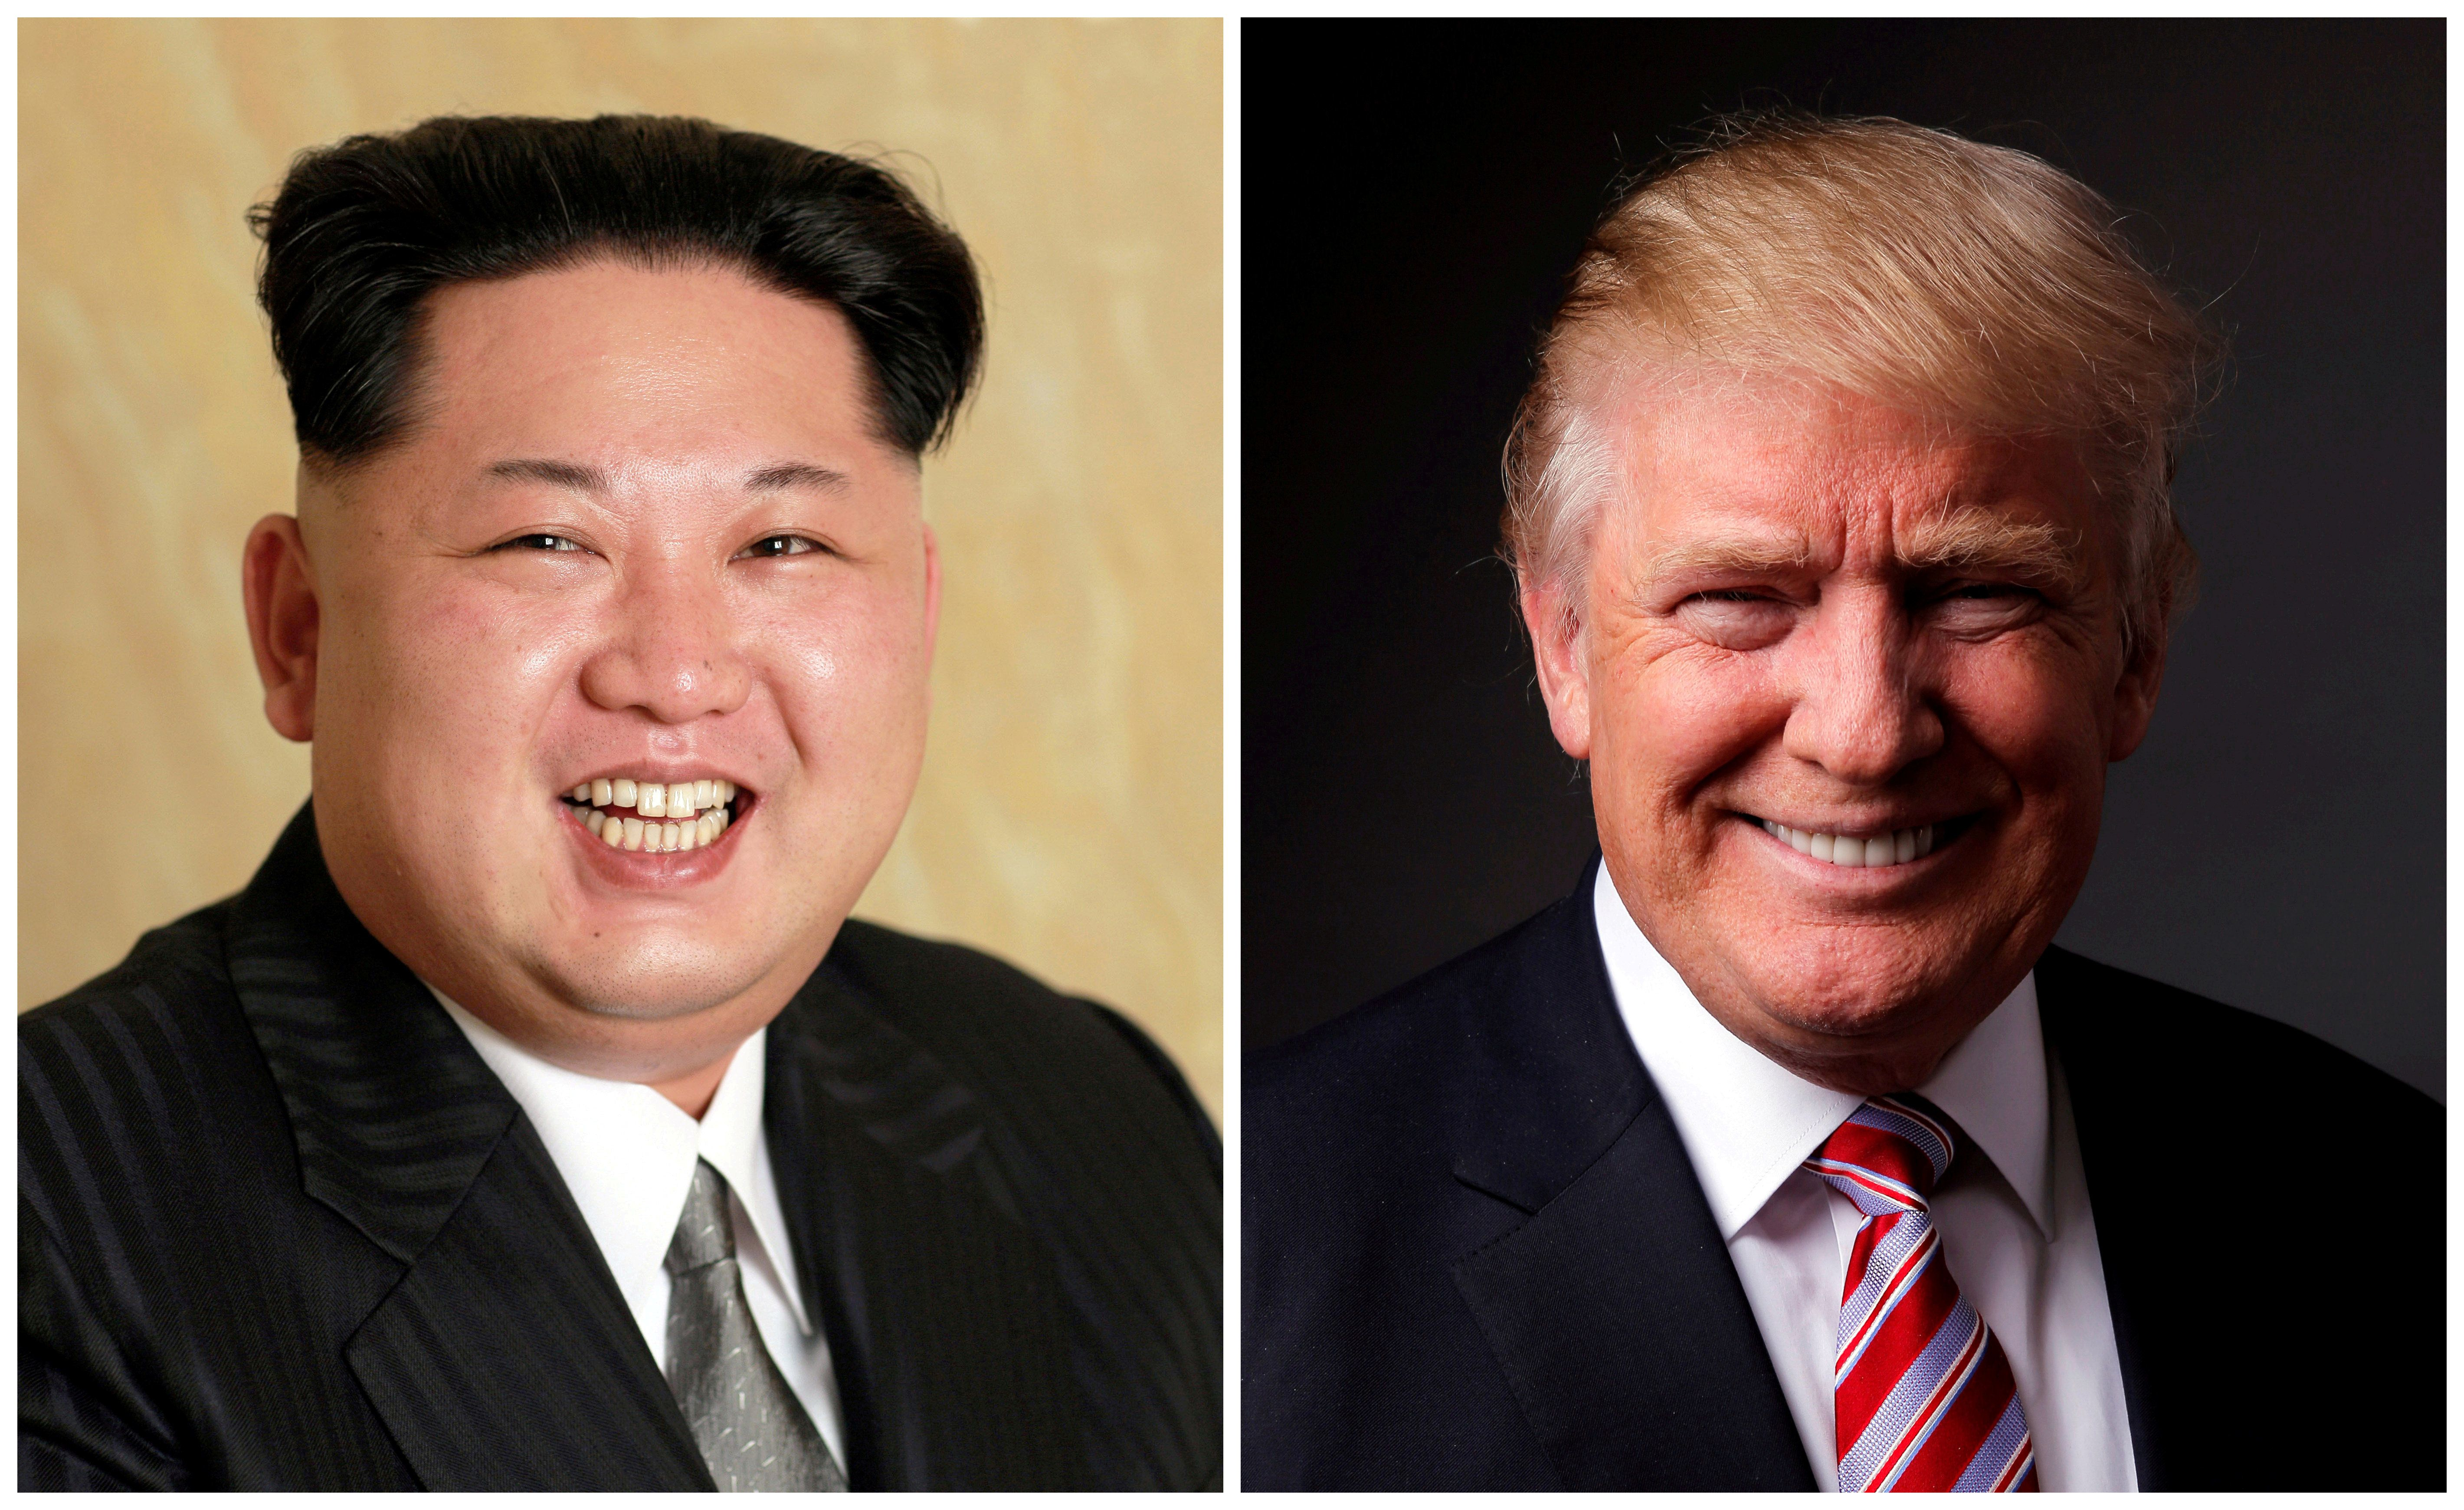 FILE PHOTOS: A combination photo shows a Korean Central News Agency (KCNA) handout of North Korean leader Kim Jong Un released on May 10, 2016, and Republican U.S. presidential candidate Donald Trump posing for a photo after an interview with Reuters in his office in Trump Tower, in the Manhattan borough of New York City, U.S., May 17, 2016. REUTERS/KCNA handout via Reuters/File Photo & REUTERS/Lucas Jackson/File Photo ATTENTION EDITORS - THE KCNA IMAGE WAS PROVIDED BY A THIRD PARTY. EDITORIAL USE ONLY. REUTERS IS UNABLE TO INDEPENDENTLY VERIFY THIS IMAGE. NO THIRD PARTY SALES. NOT FOR USE BY REUTERS THIRD PARTY DISTRIBUTORS. SOUTH KOREA OUT. NO COMMERCIAL OR EDITORIAL SALES IN SOUTH KOREA.